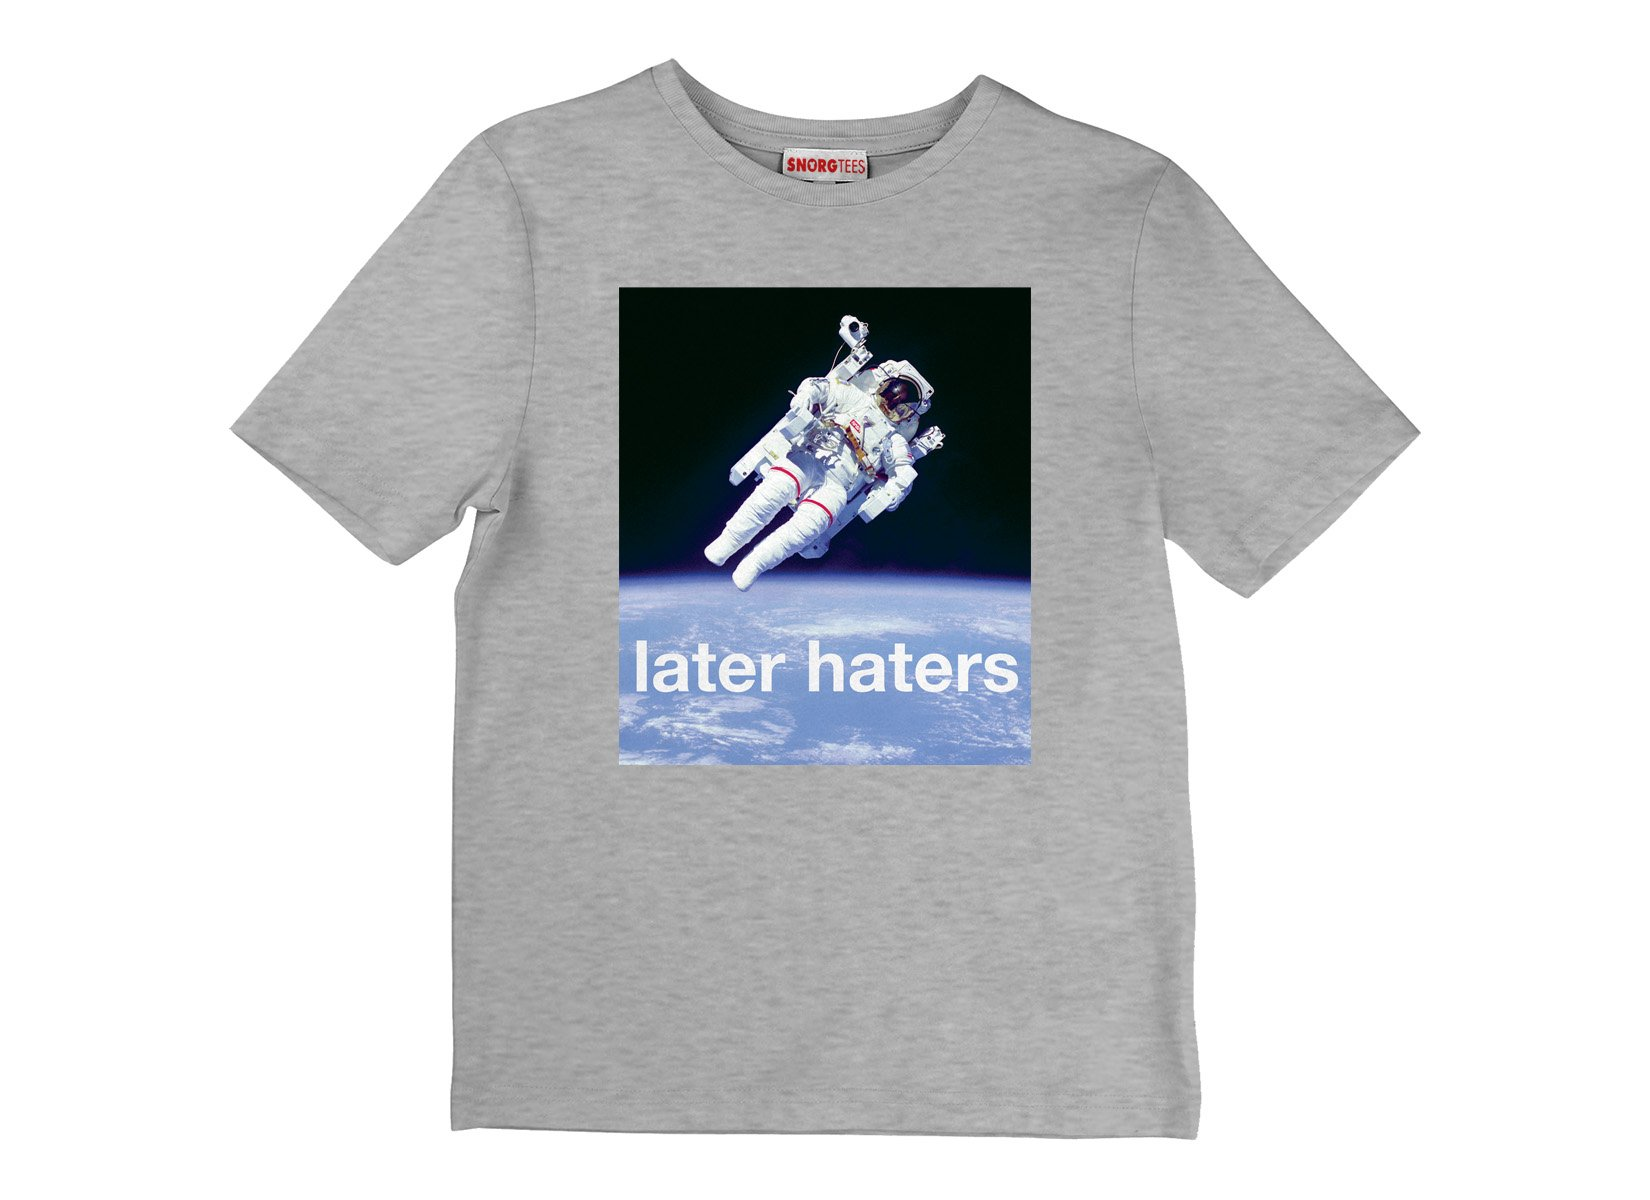 Later Haters on Kids T-Shirt